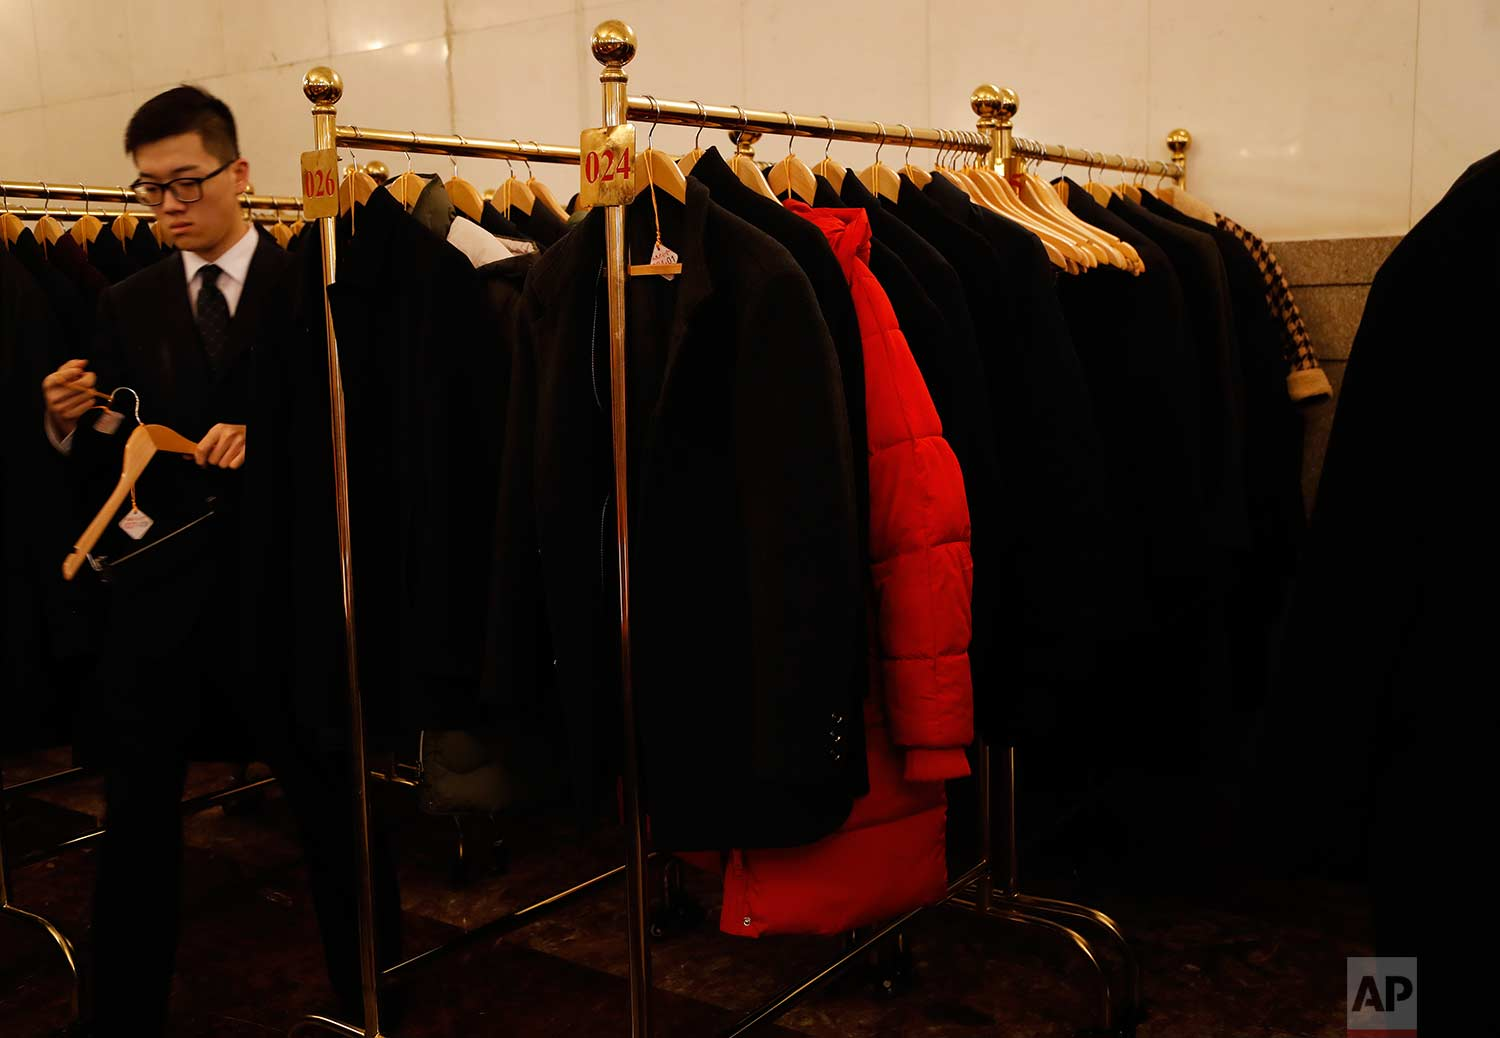 In this Tuesday, March 13, 2018 photo, a red jacket hangs amid black coats before the start during a plenary session of China's National People's Congress (NPC) at the Great Hall of People in Beijing. (AP Photo/Aijaz Rahi)